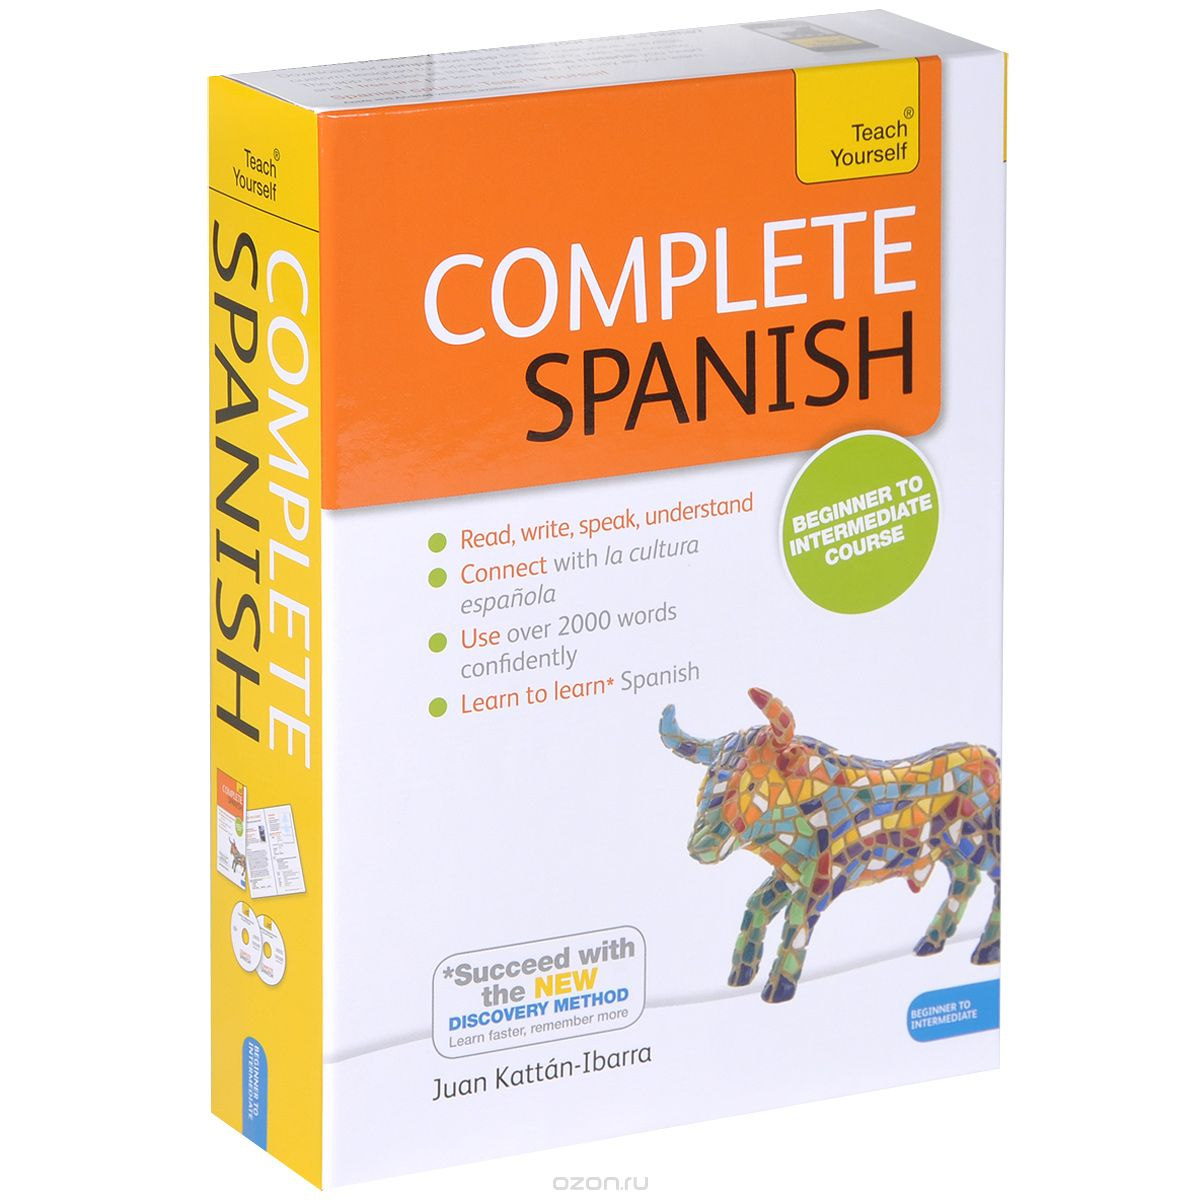 How long to learn Spanish teaching myself?